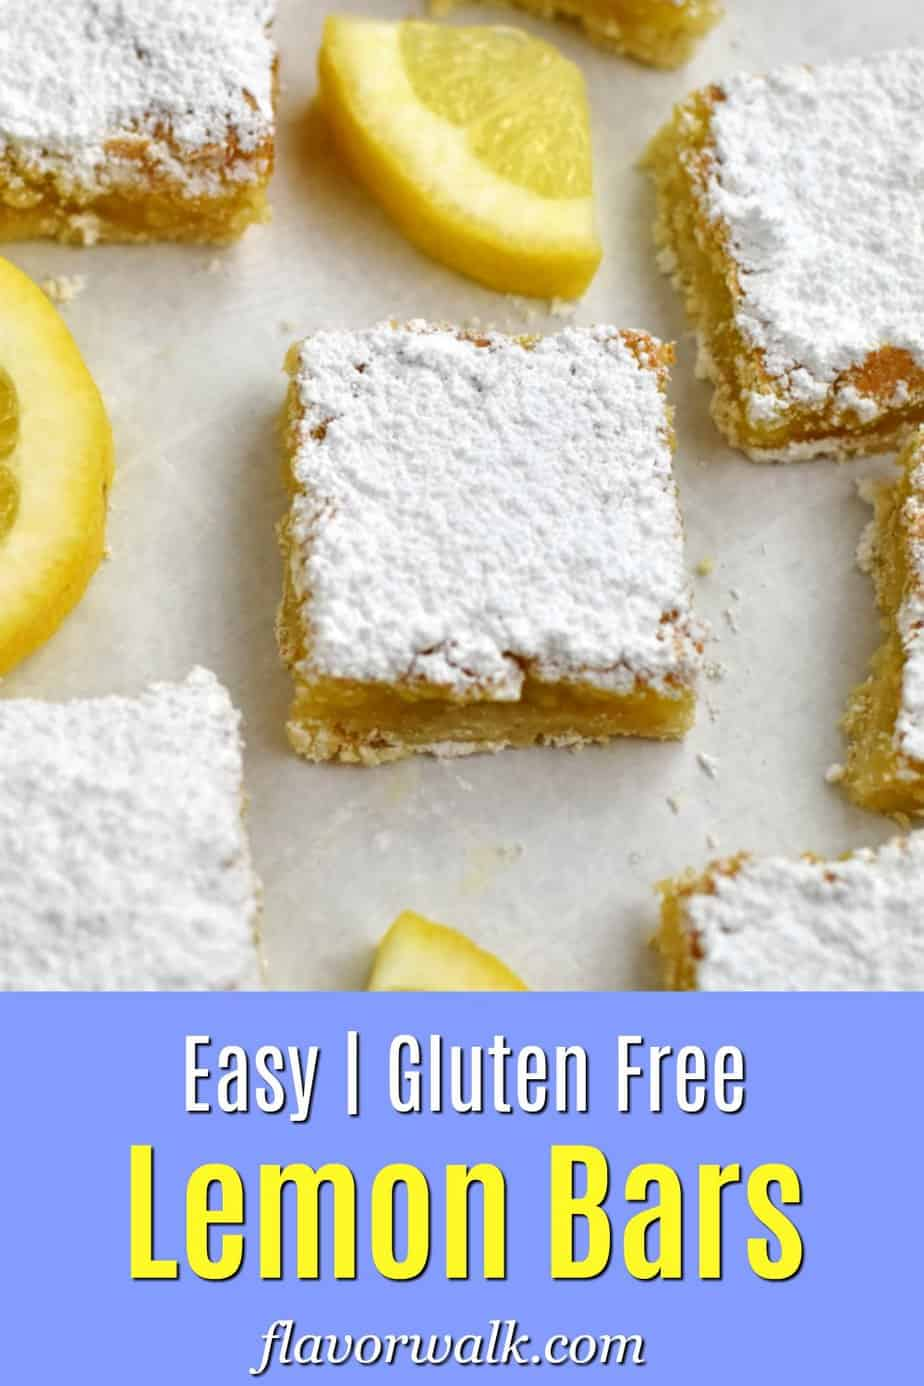 Upper image is gluten free lemon bars and lemon slices on parchment paper. Bottom image is a light blue text overlay.